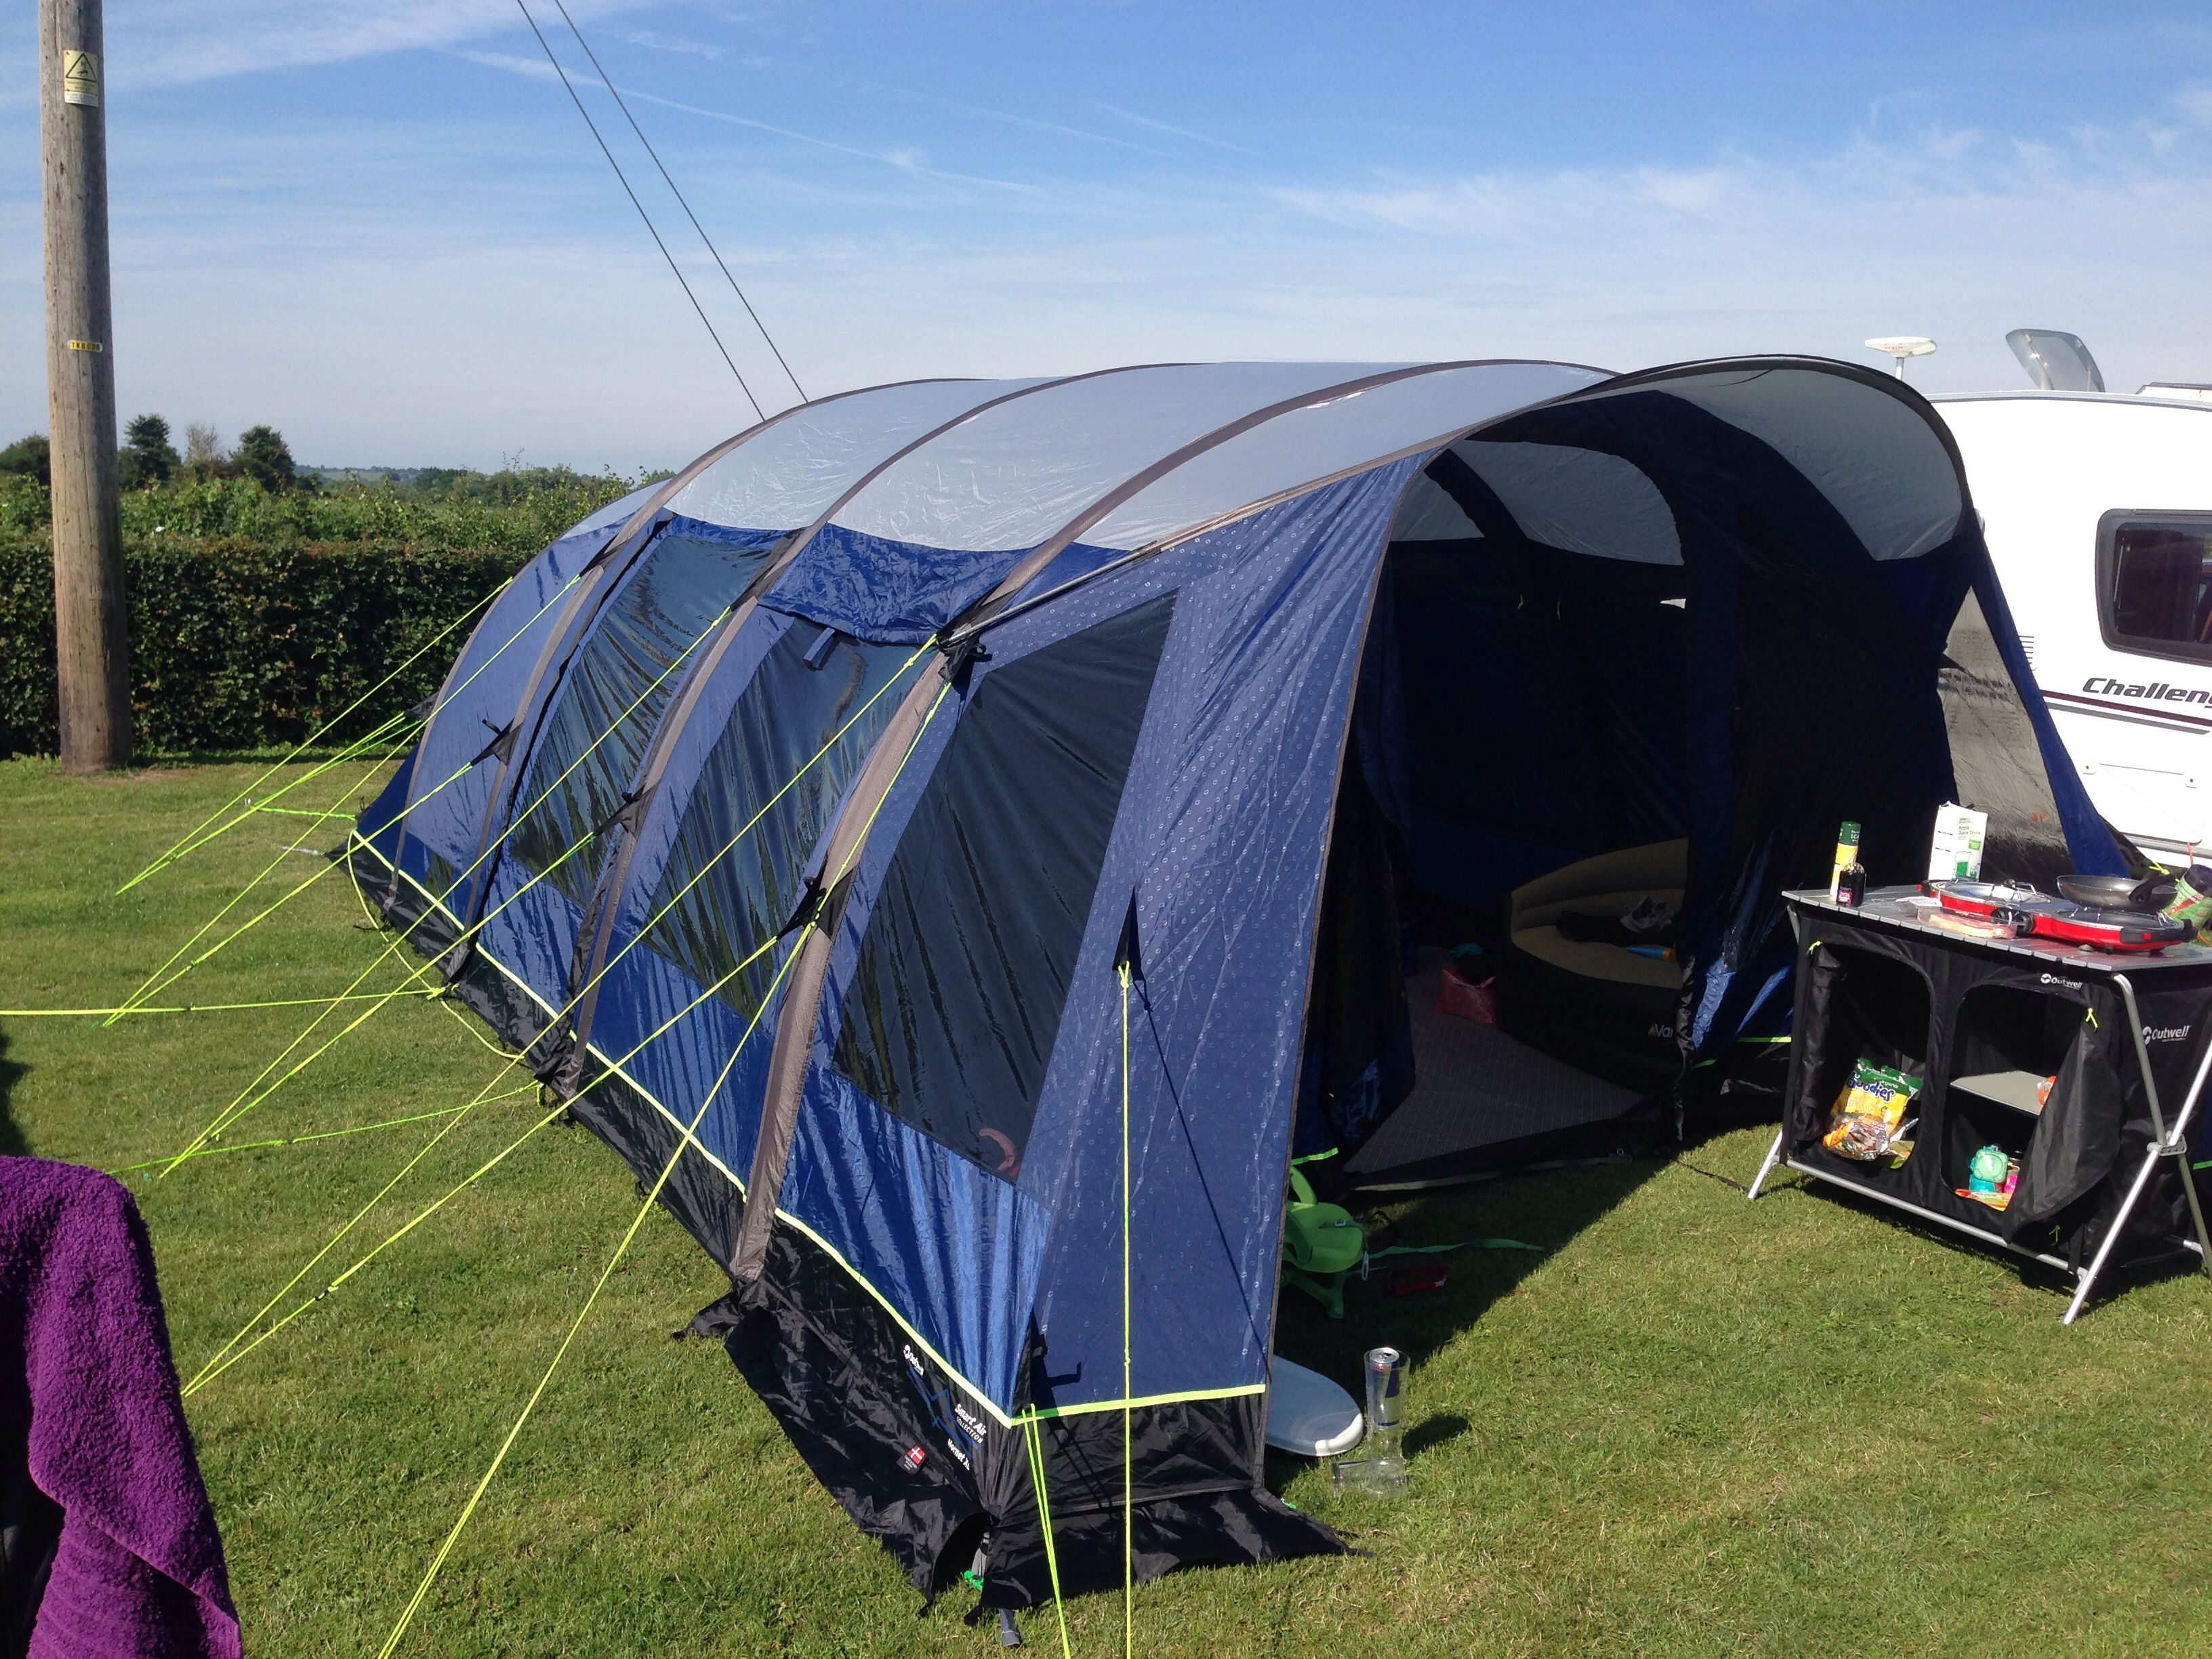 The Outwell Hornet XL Smart Air tent at my last c&ing trip at the Hawbridge Inn & The Outwell Hornet XL Smart Air tent at my last camping trip at ...